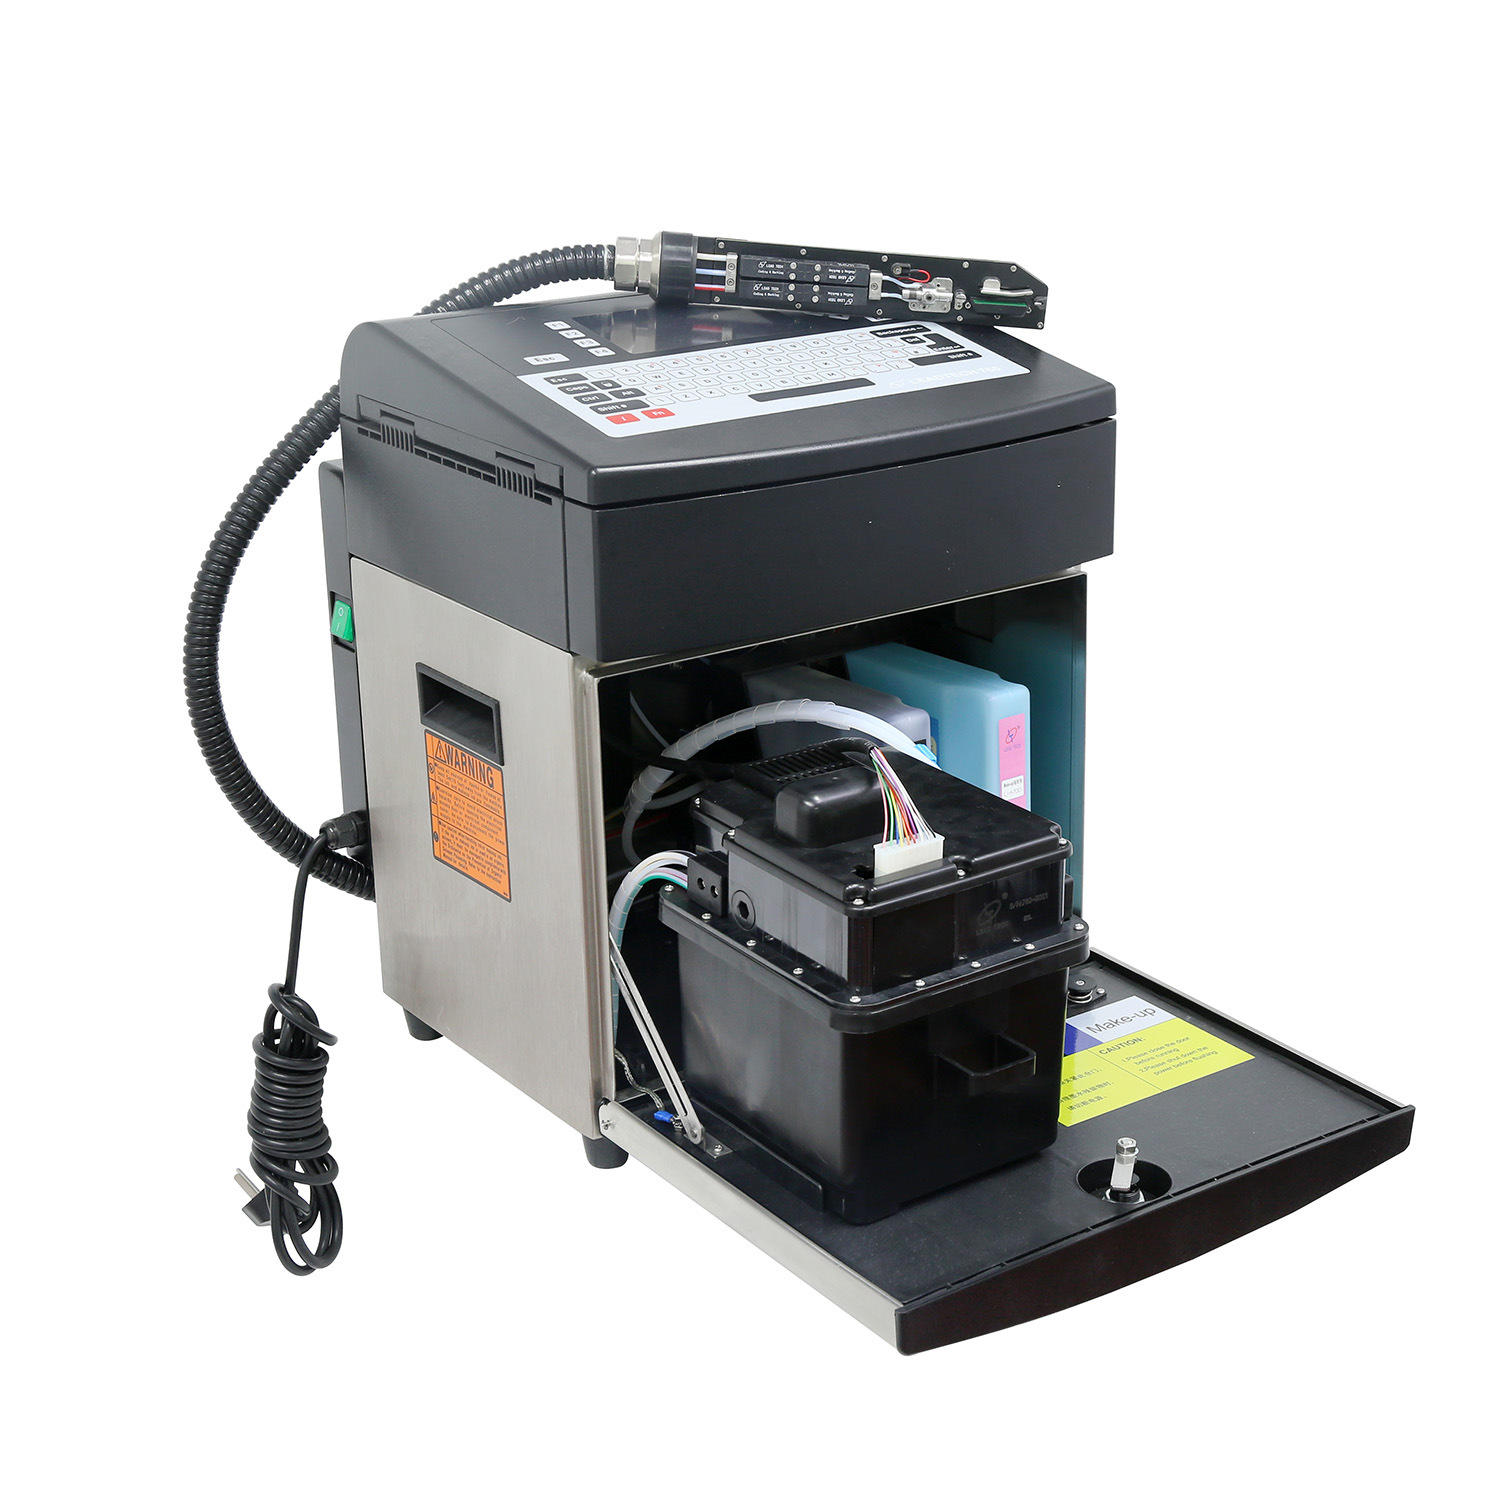 Lead Tech Lt760 Printer Date and Time Printing